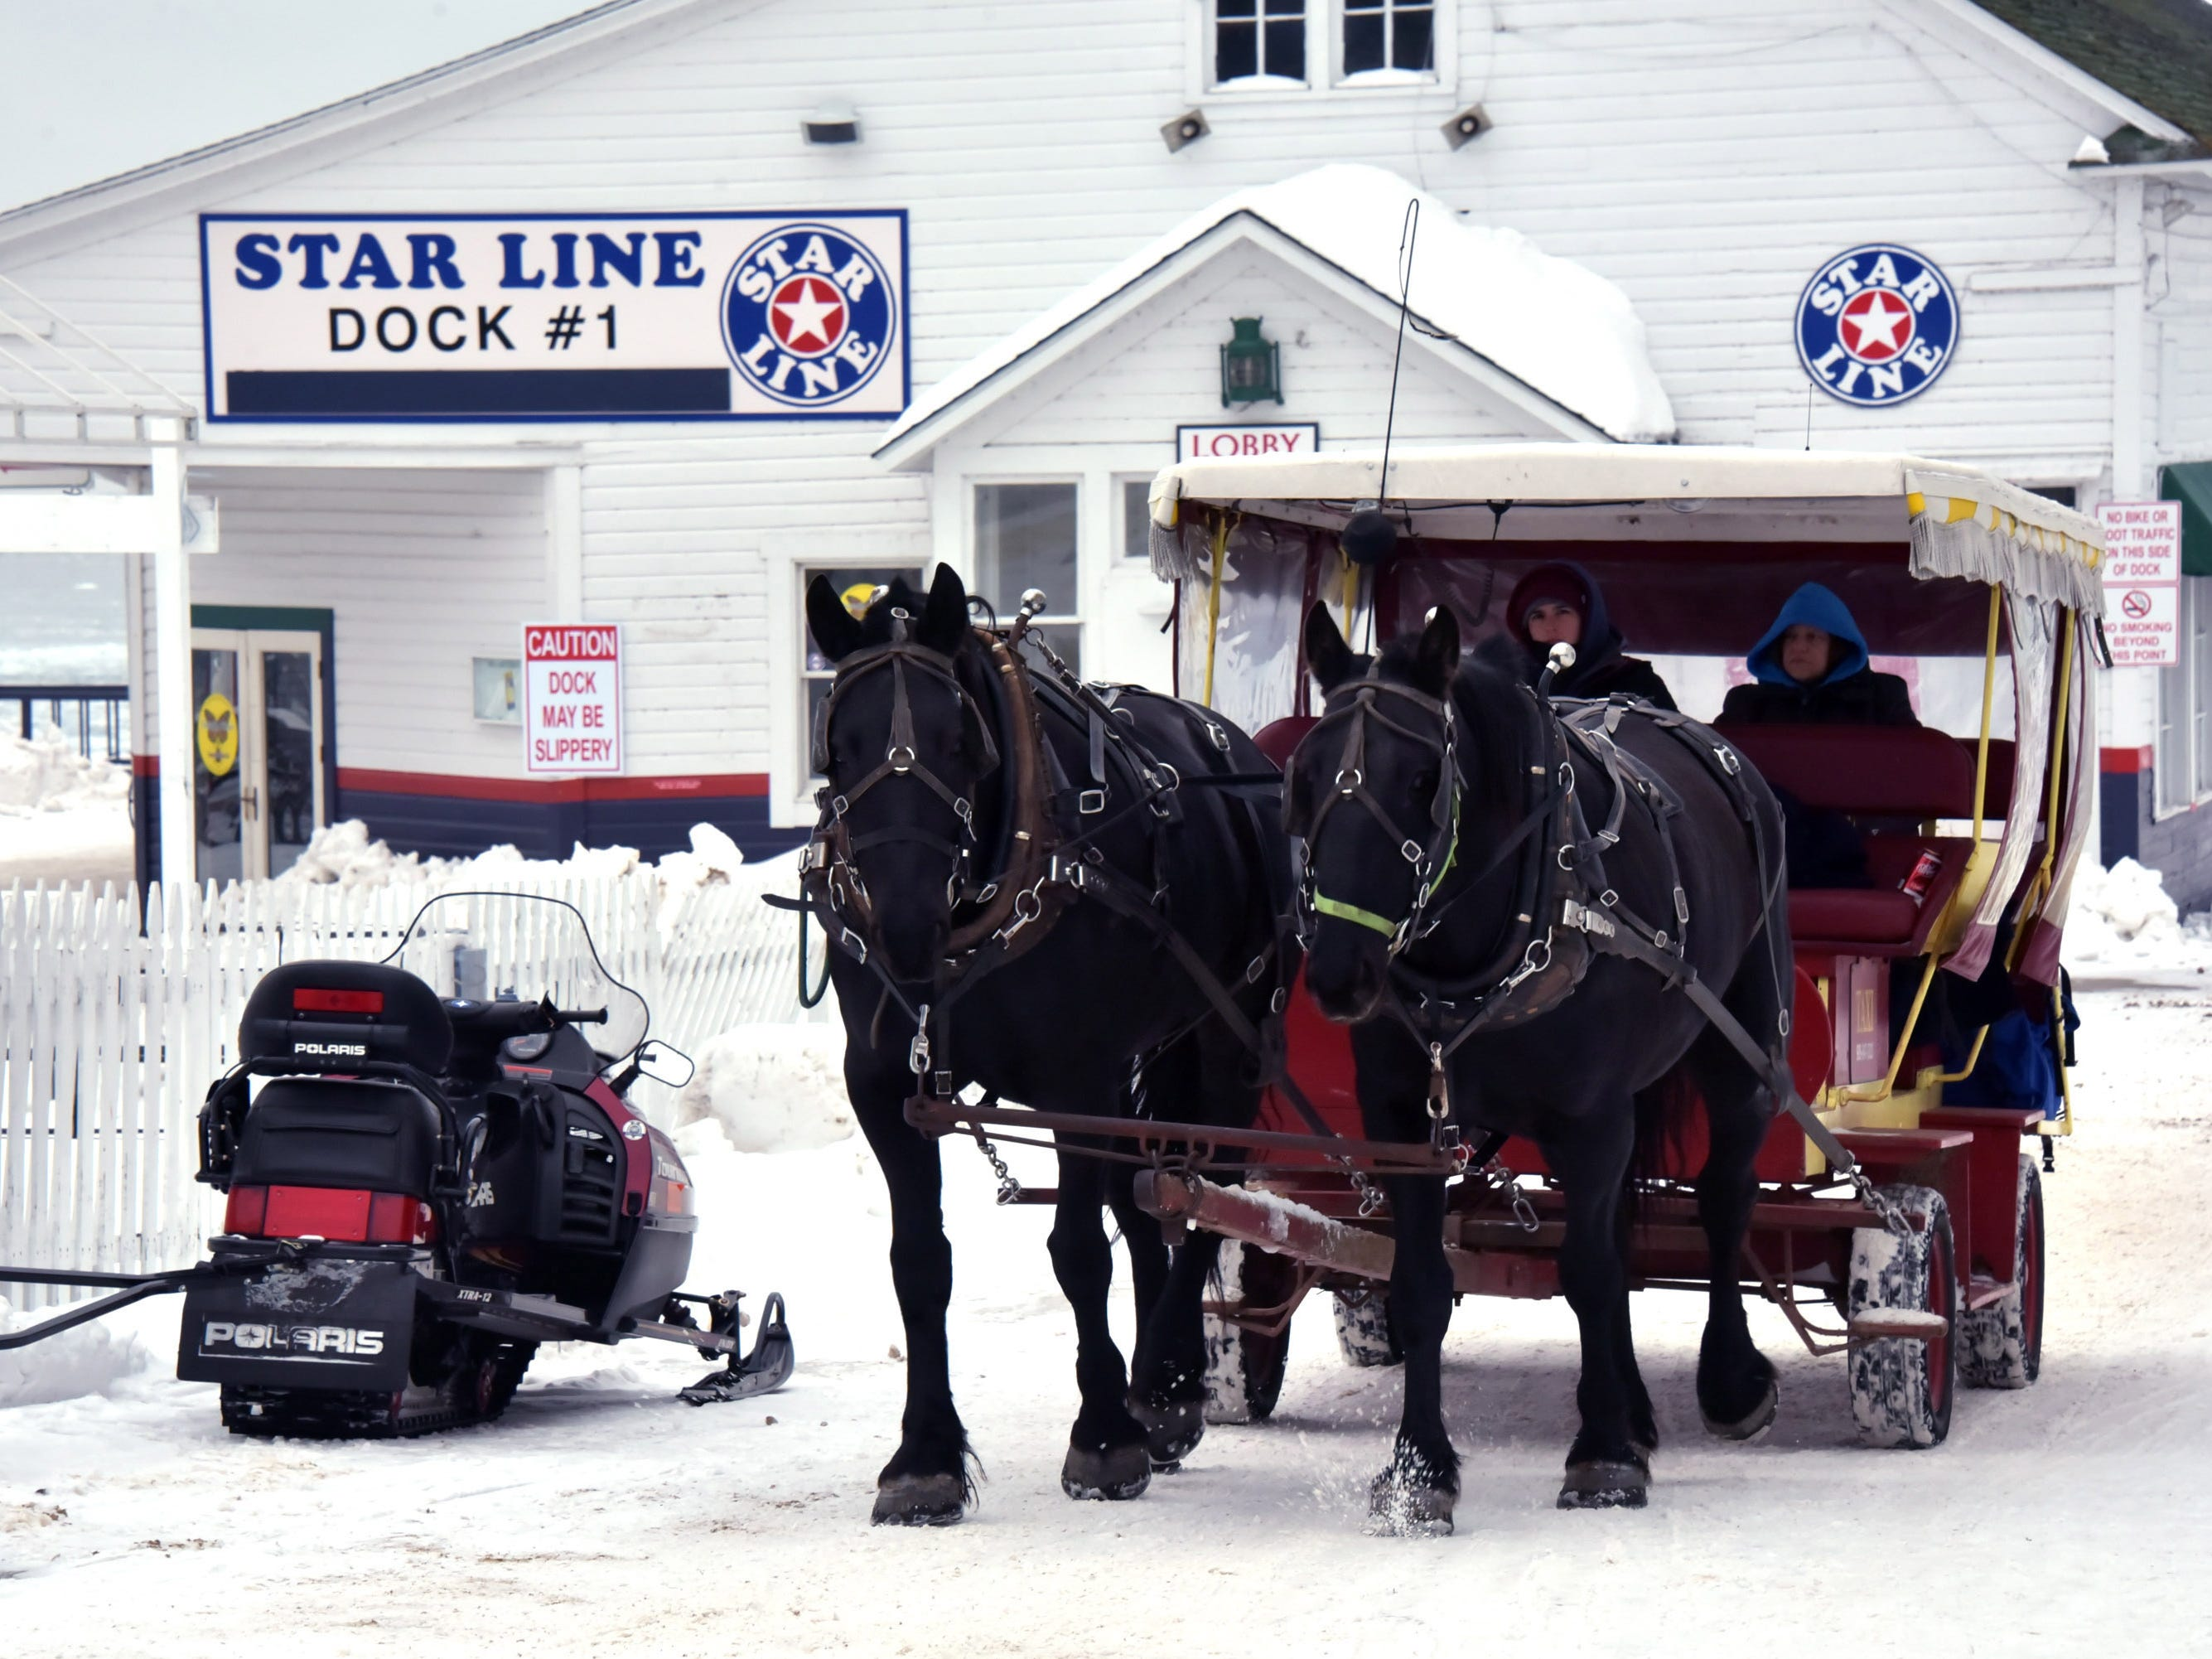 Snowmobiles or horse-drawn carriage are the best ways to get around on Mackinac Island, which is known for its Victorian homes. No automobiles are allowed.